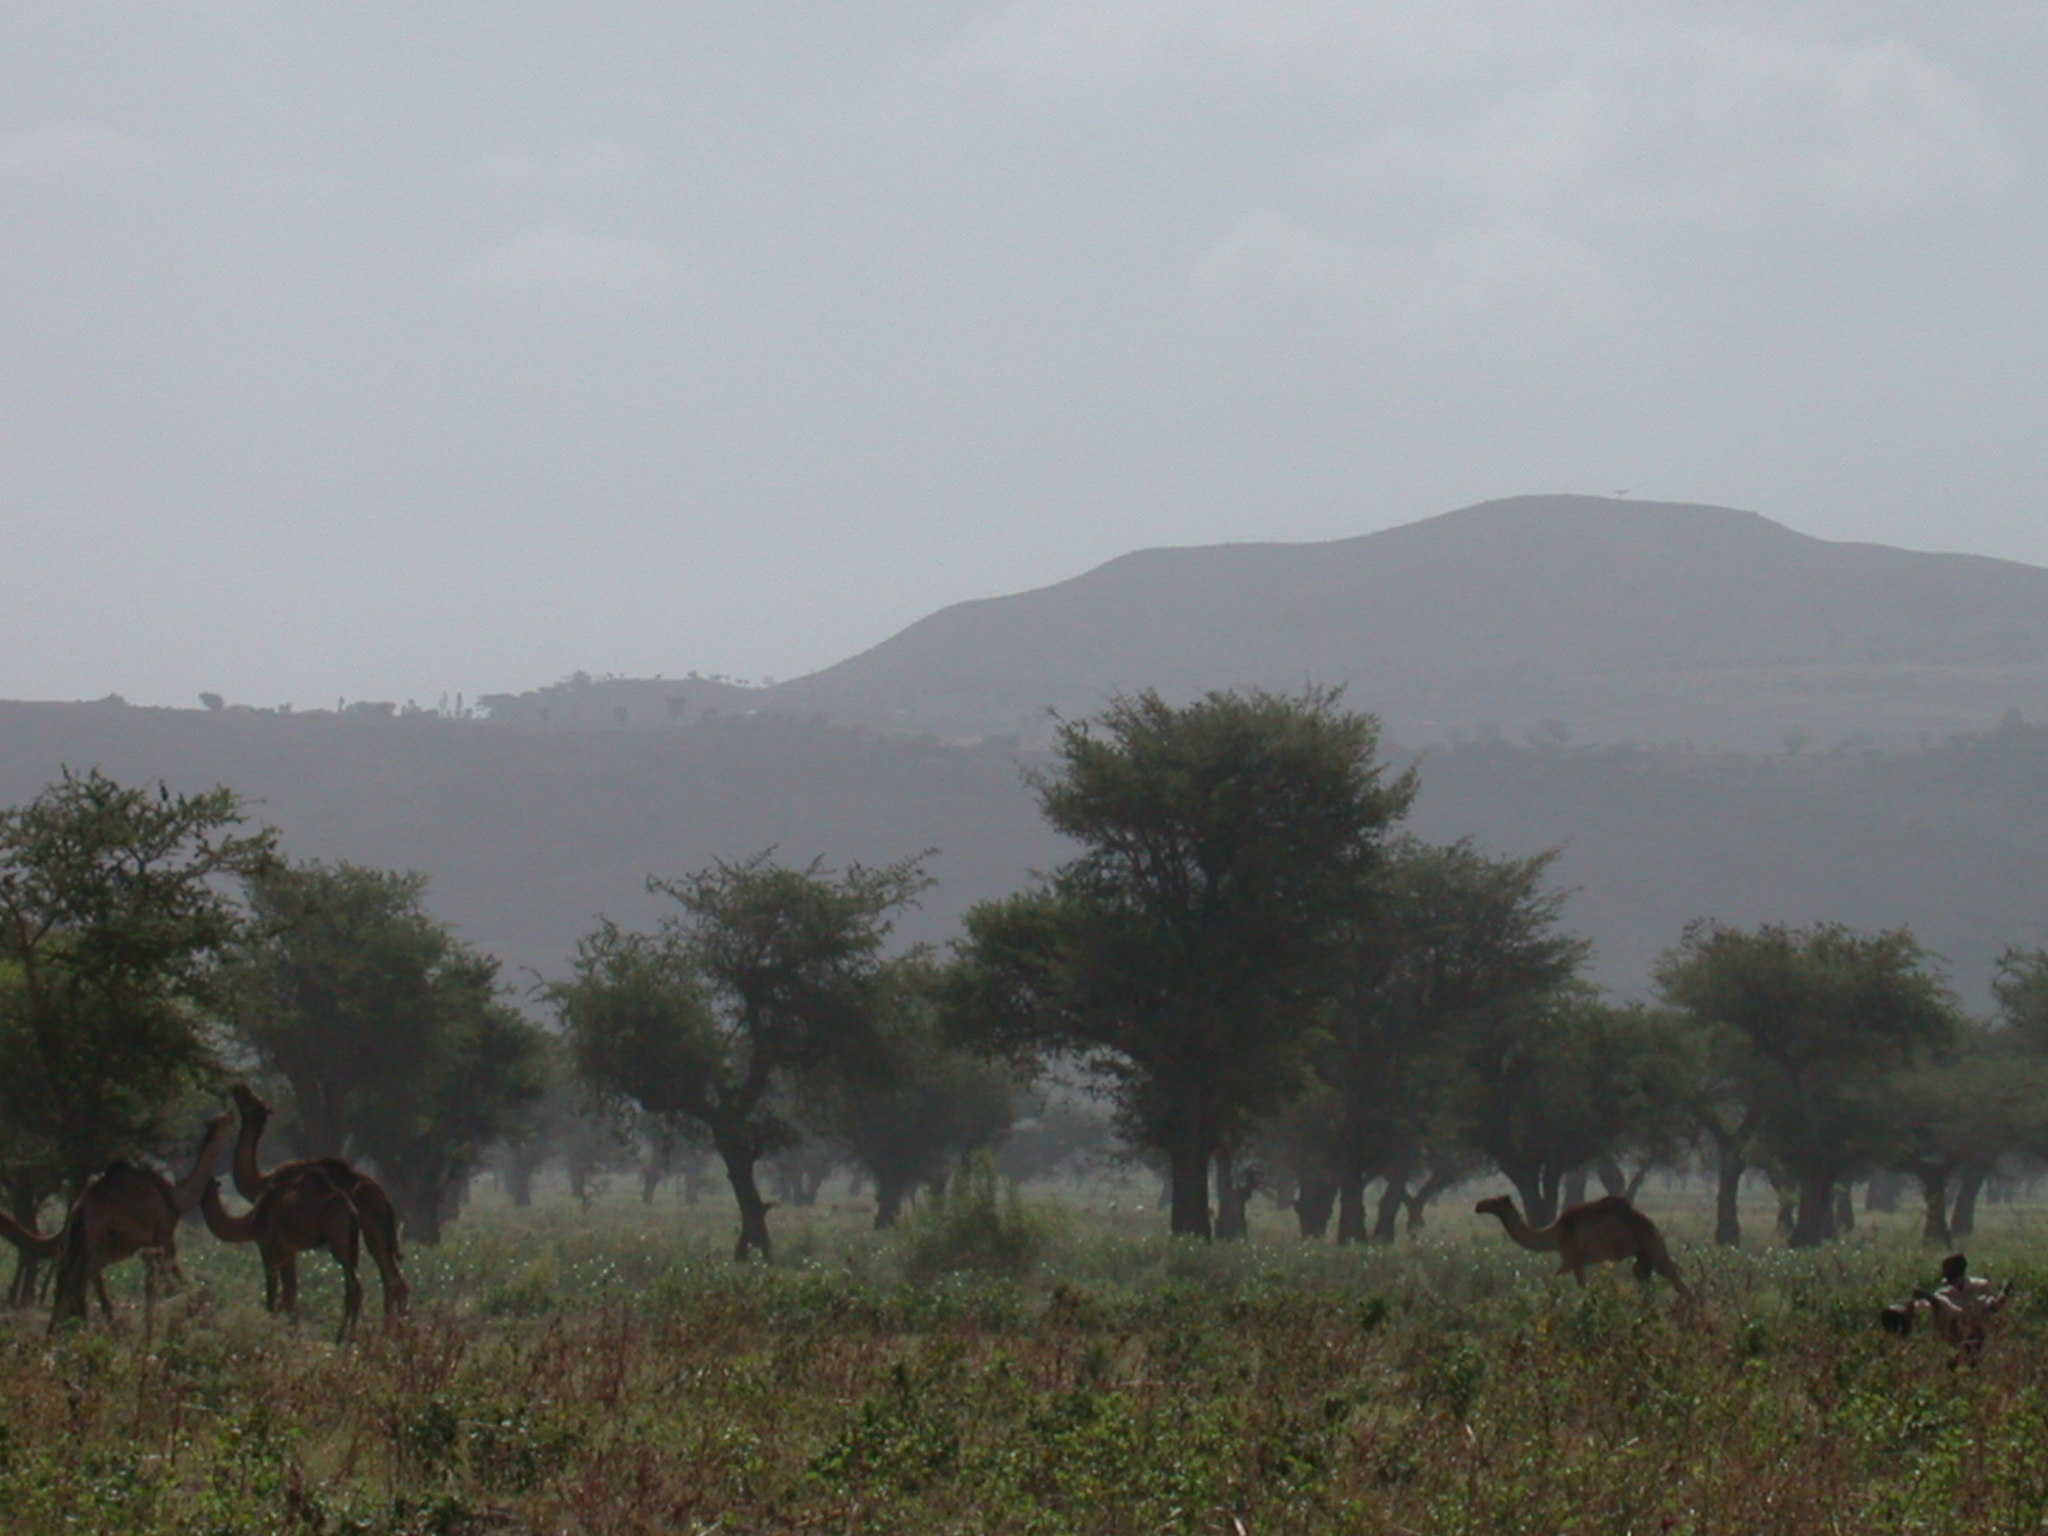 Herd of Camels Passing Broken Bus on Route Between Addis Ababa and Awash Saba, Ethiopia